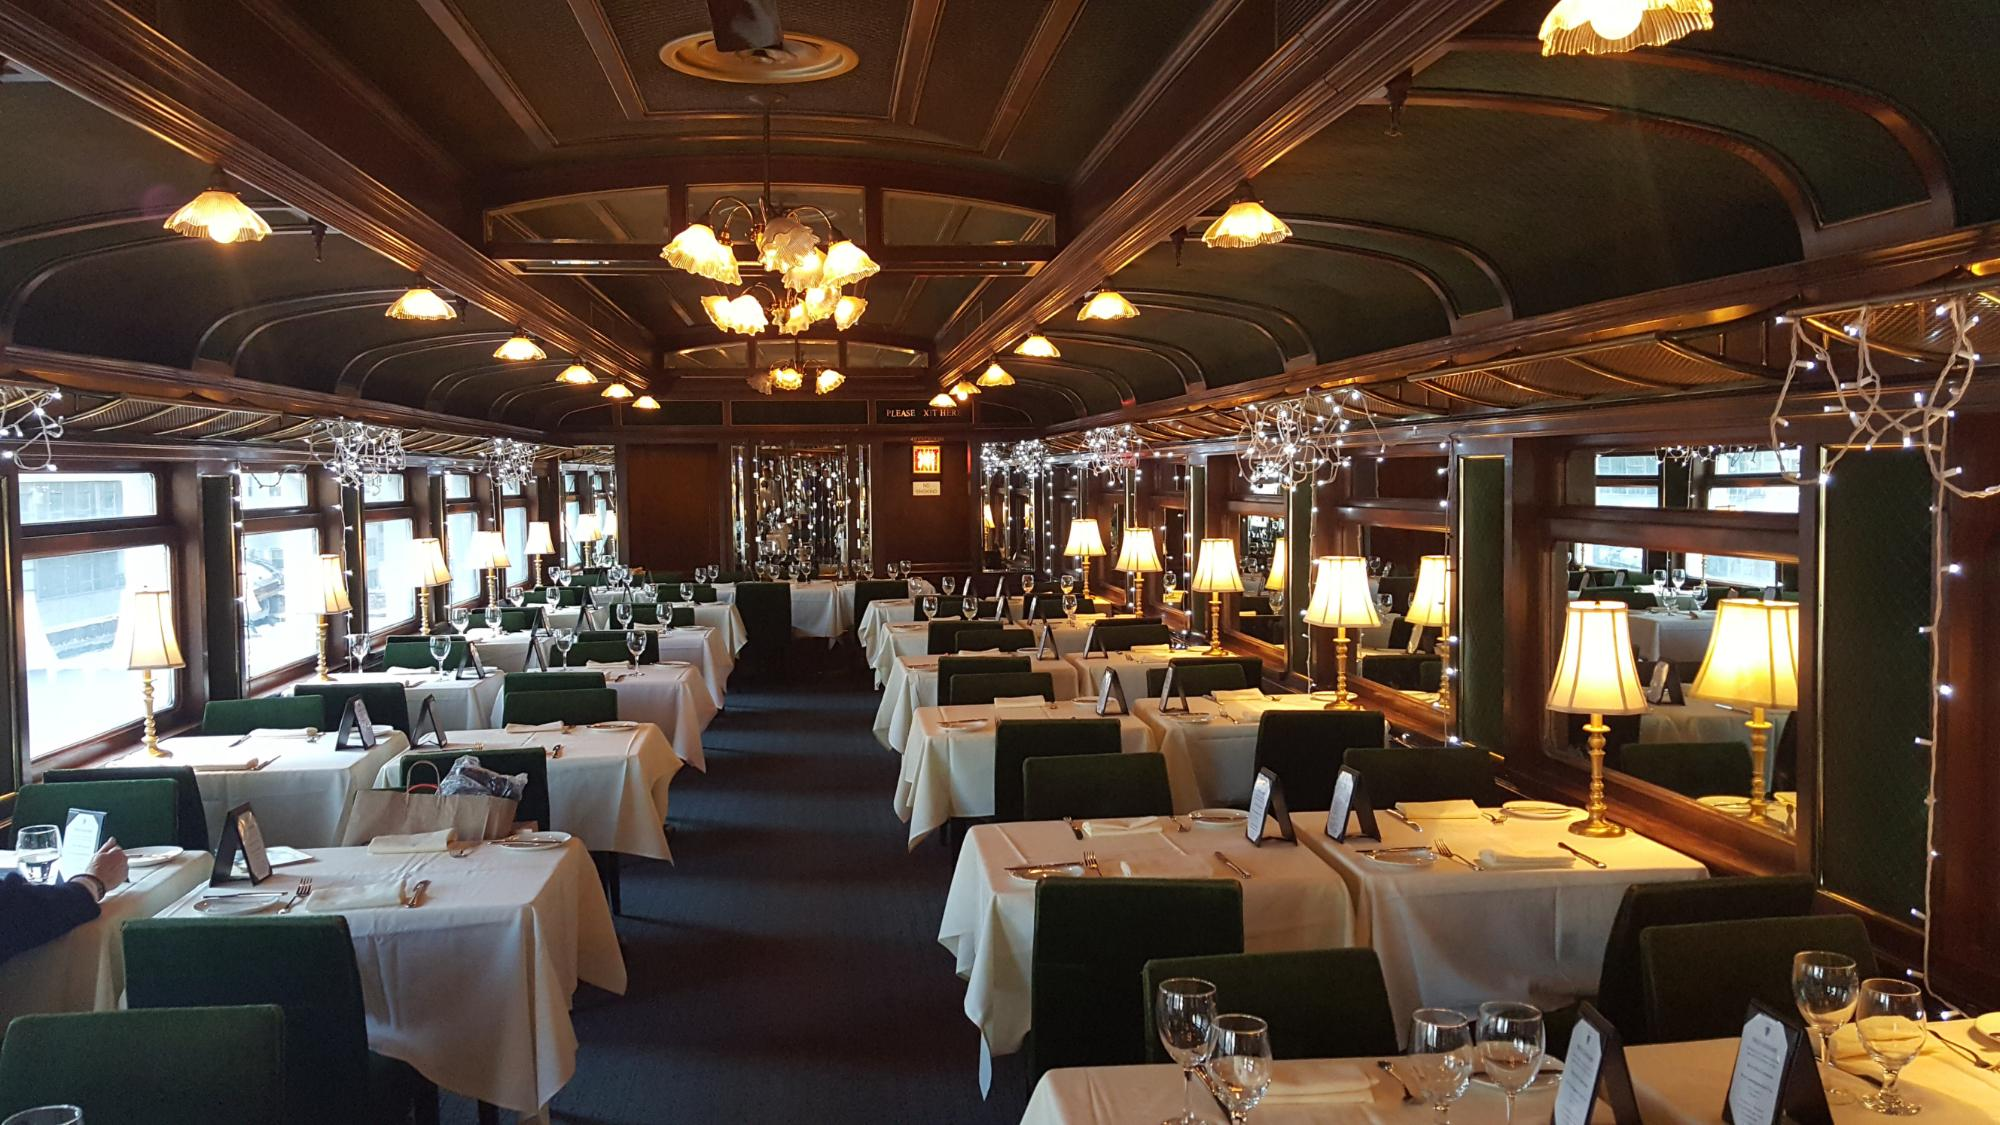 Restaurant A New York Your Must Try This Unbelievable Restaurant In New York